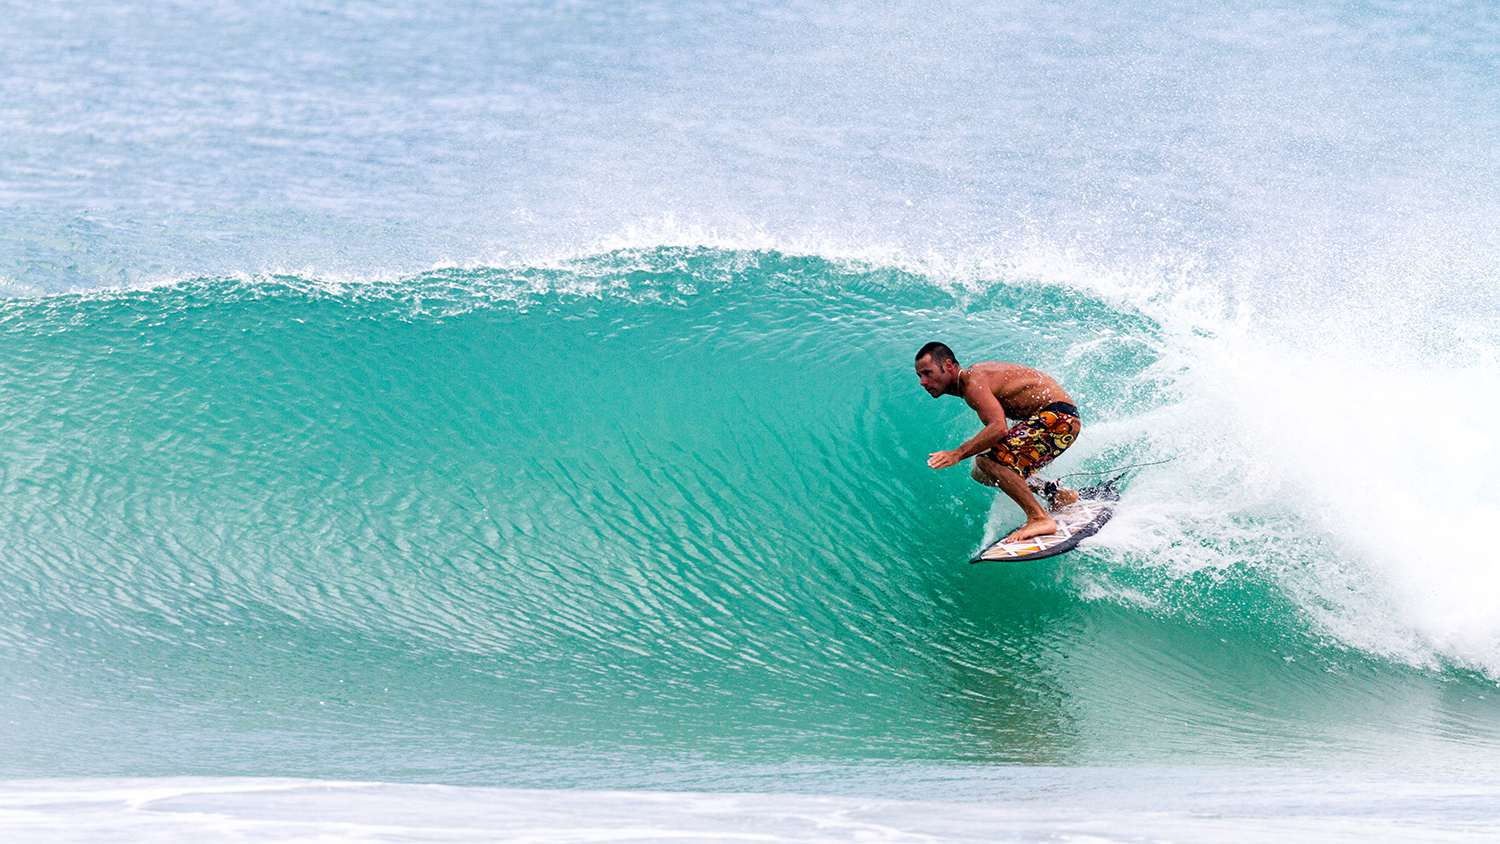 Surfing in the South China Sea